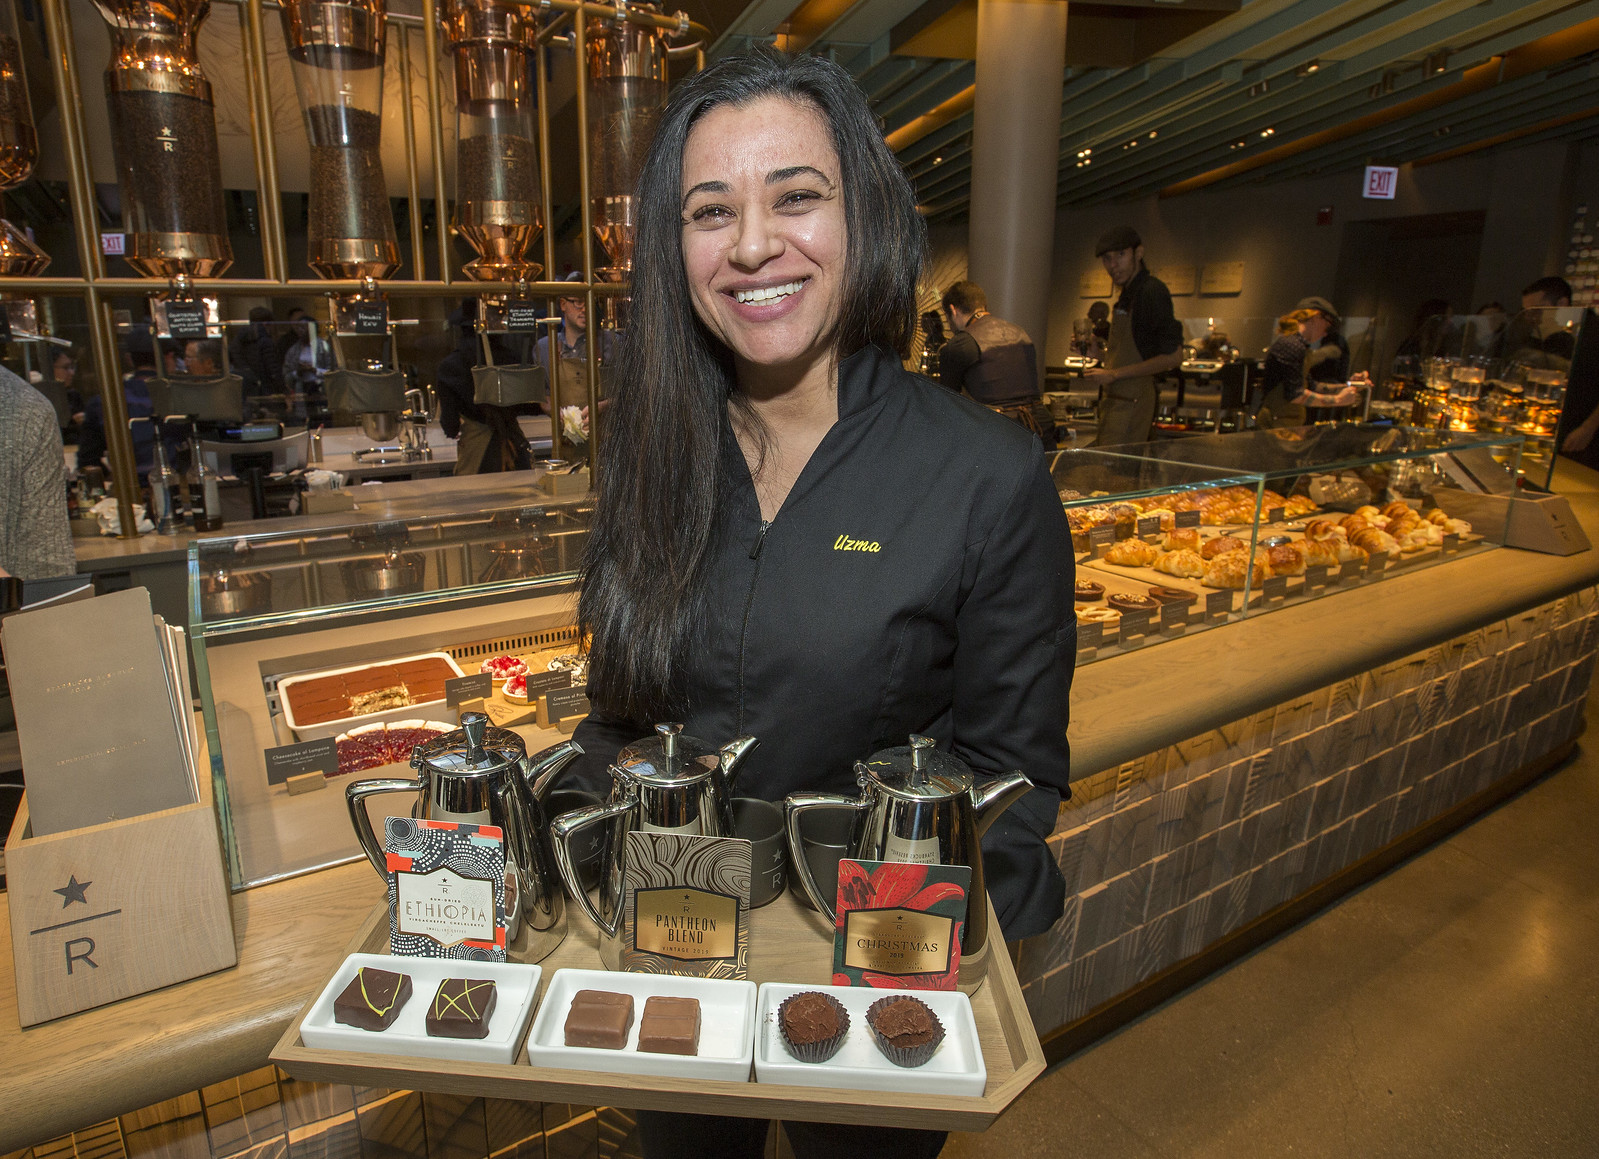 A woman holding a tray of truffles and coffee pots.